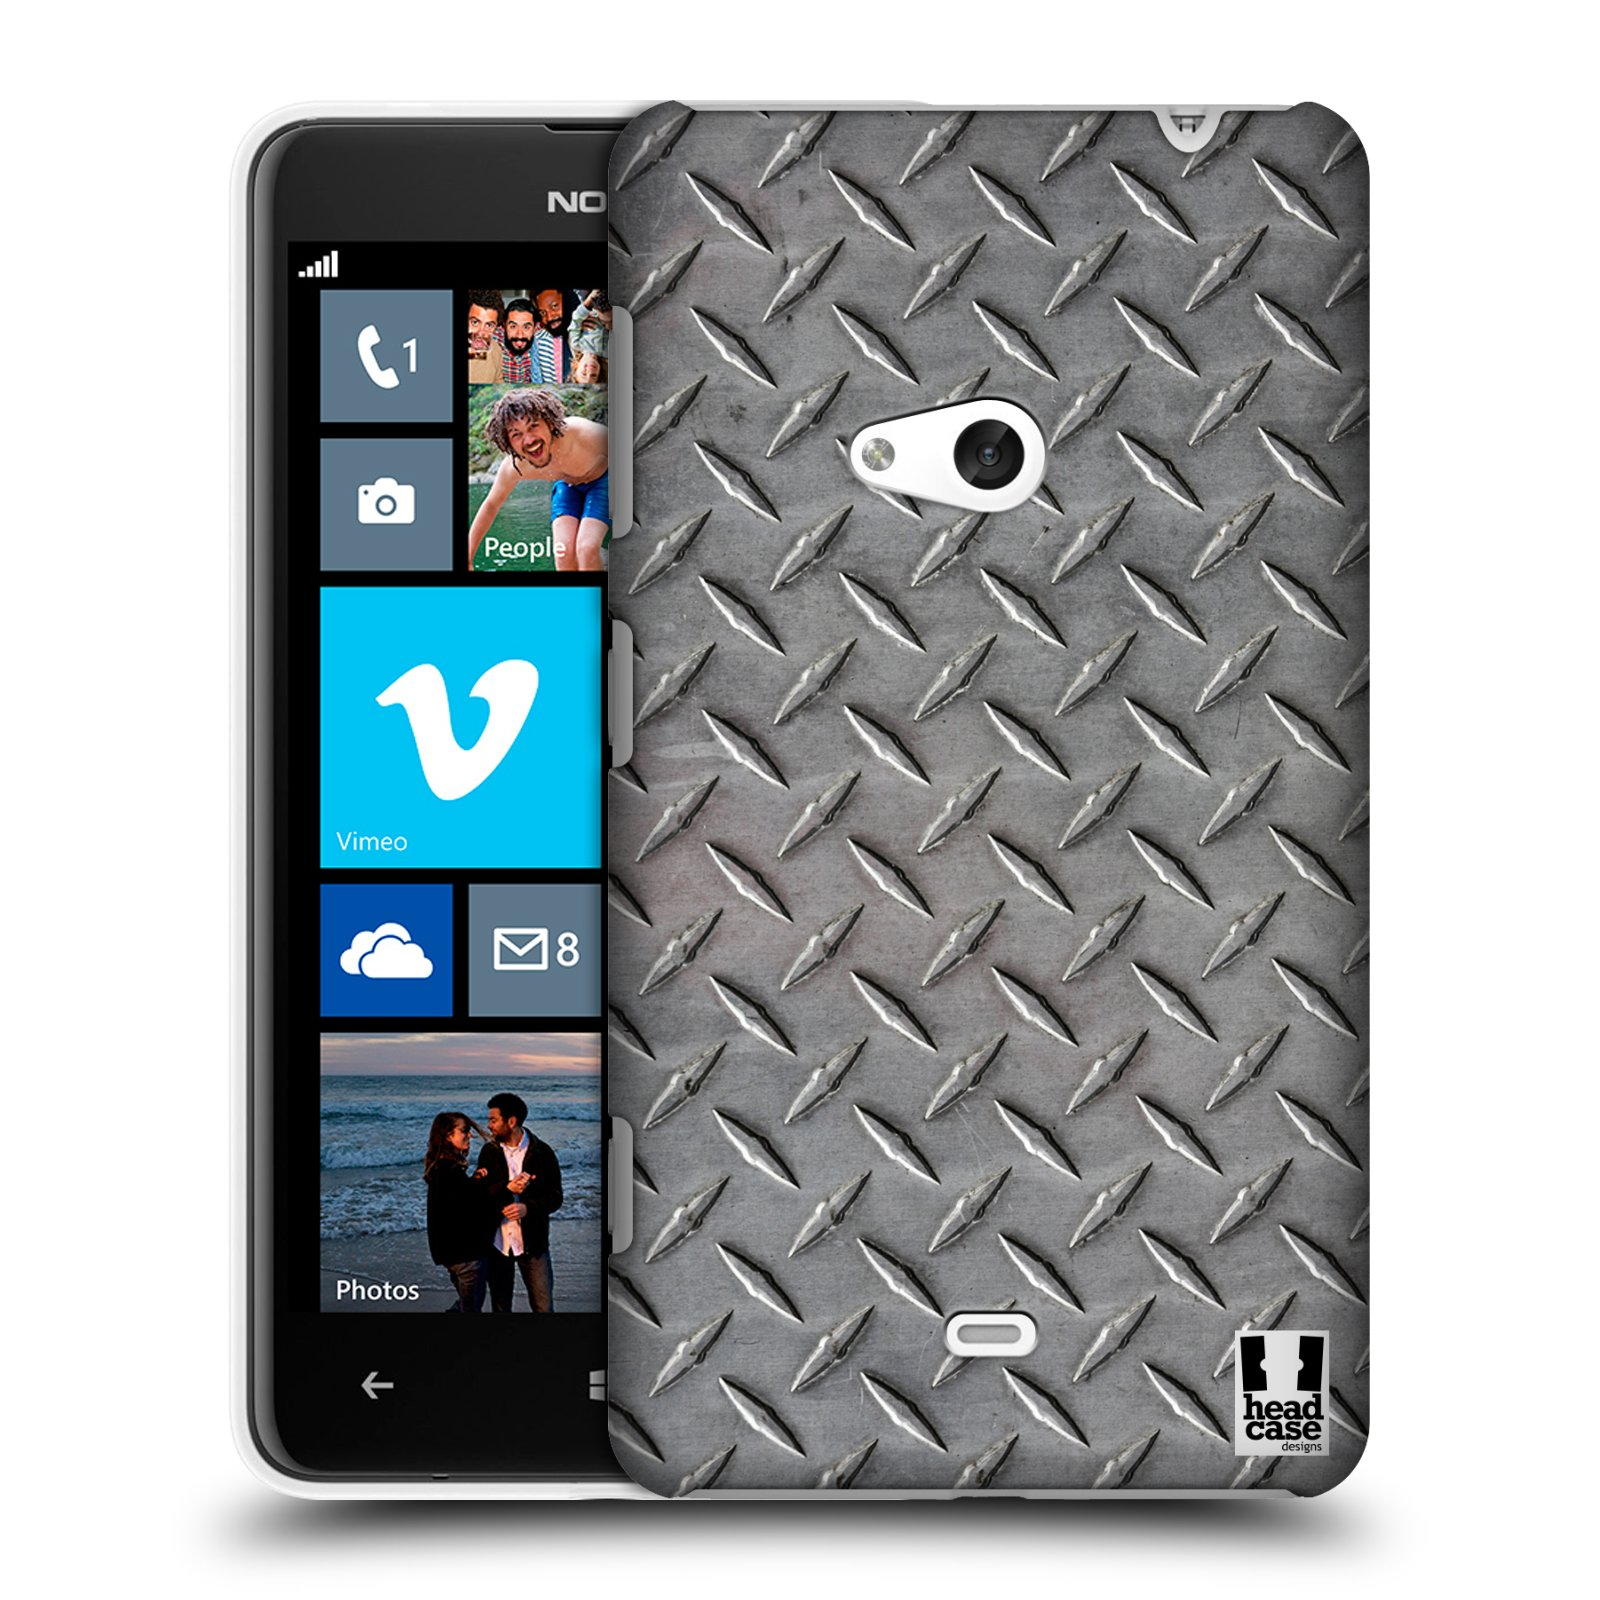 HEAD CASE DESIGNS TRANSPORT PAINT CASE COVER FOR NOKIA LUMIA 625